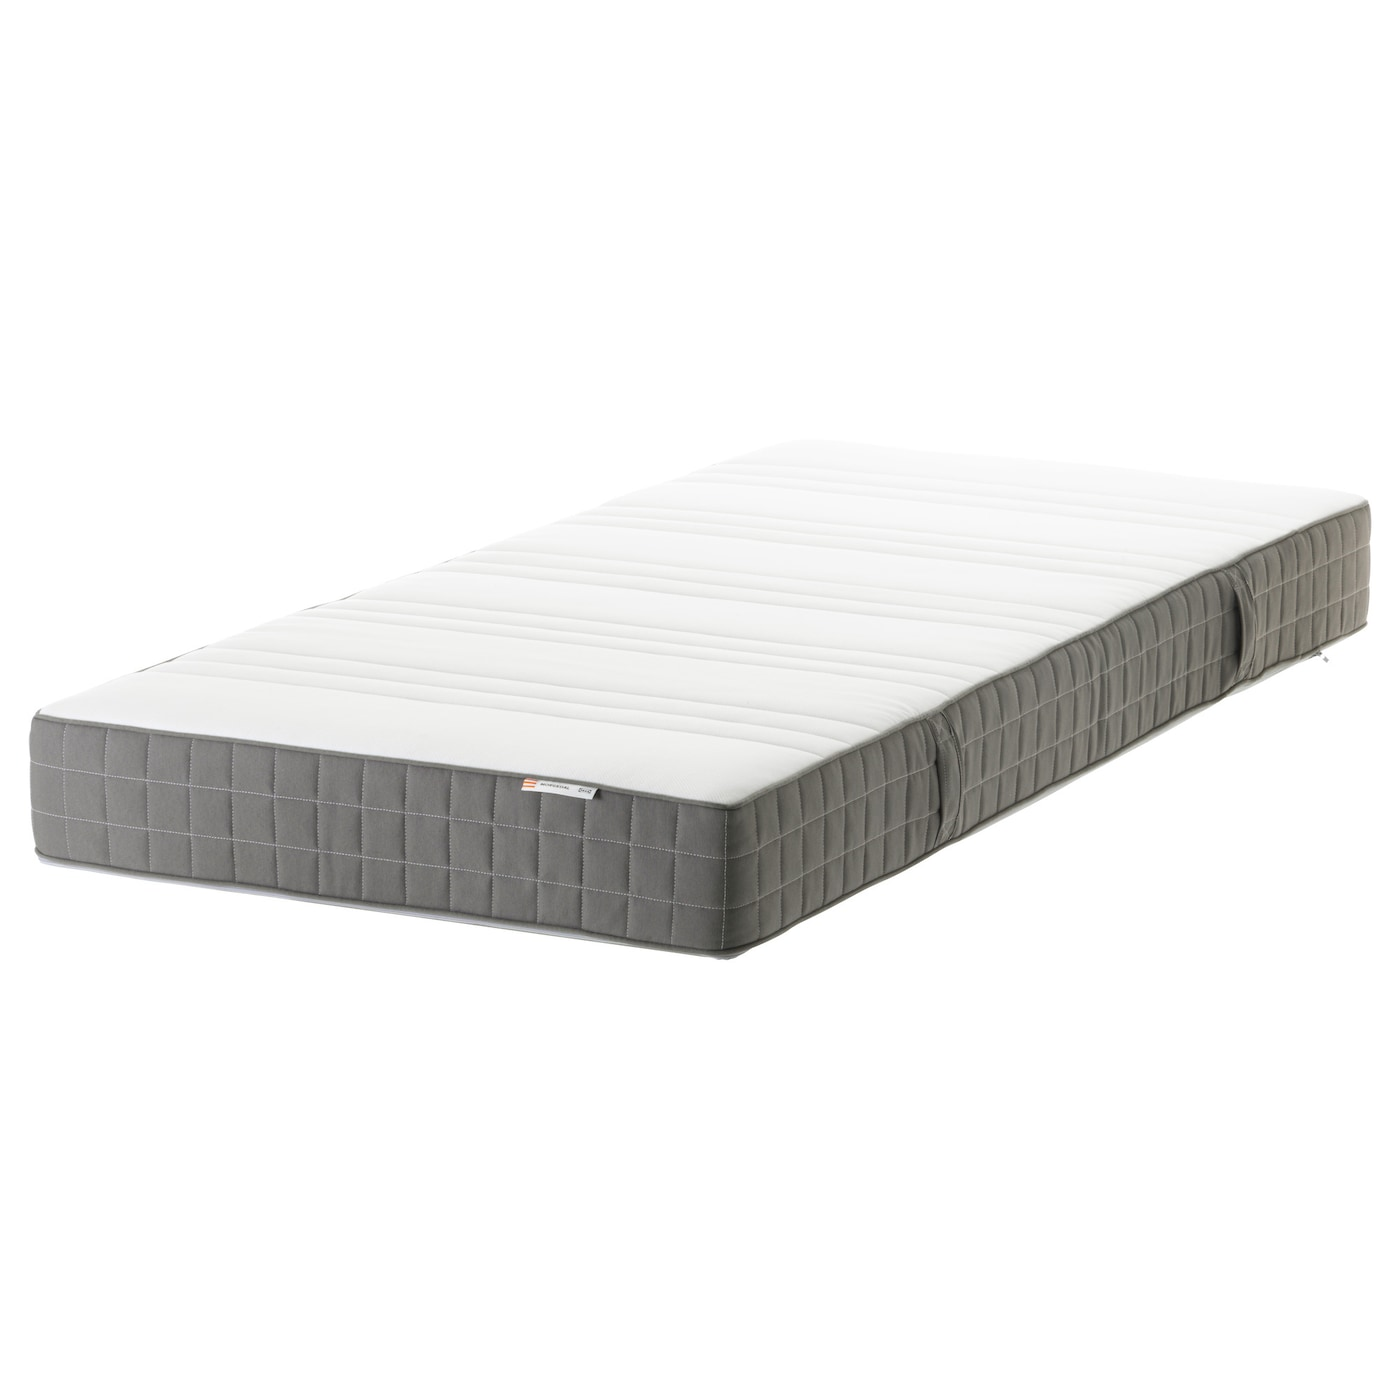 MORGEDAL Foam mattress Firm dark grey Standard Single IKEA